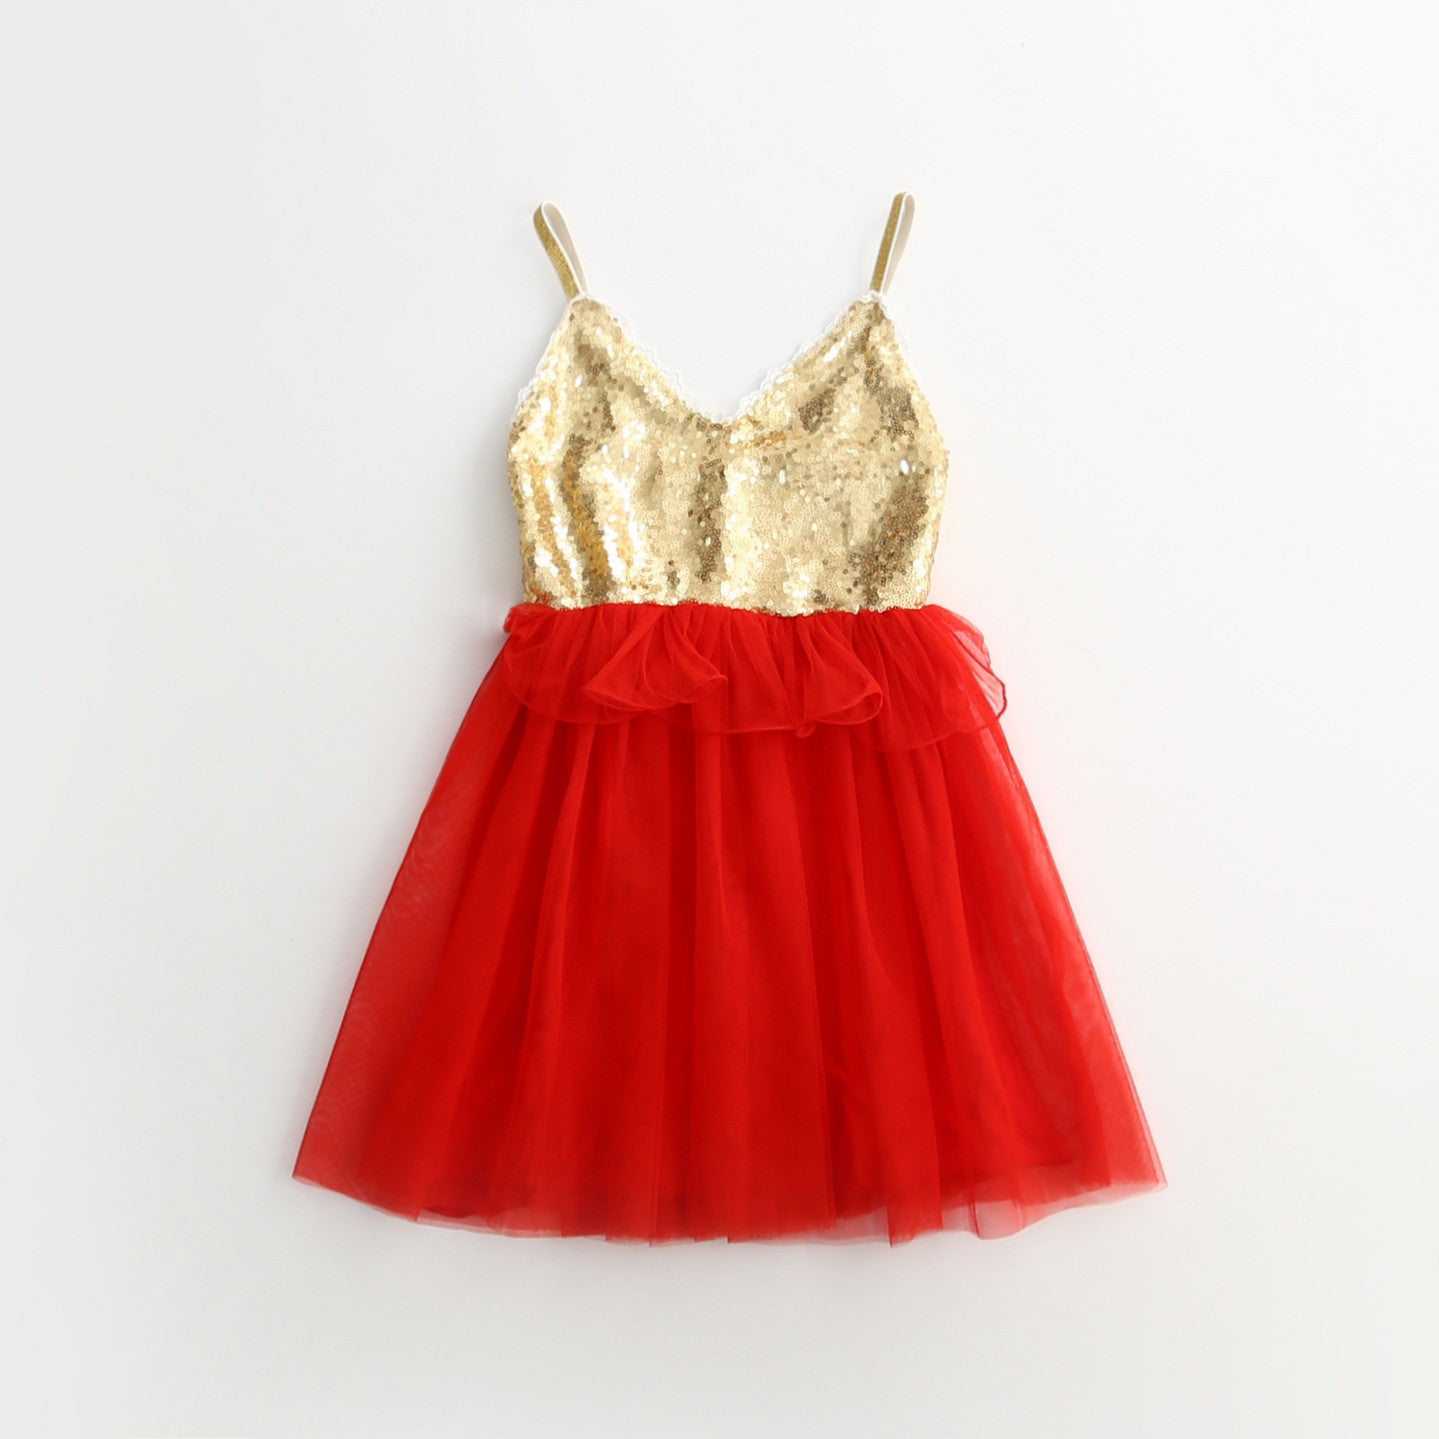 Cassidy ~ Sequin Frill Tutu Dress (RED)